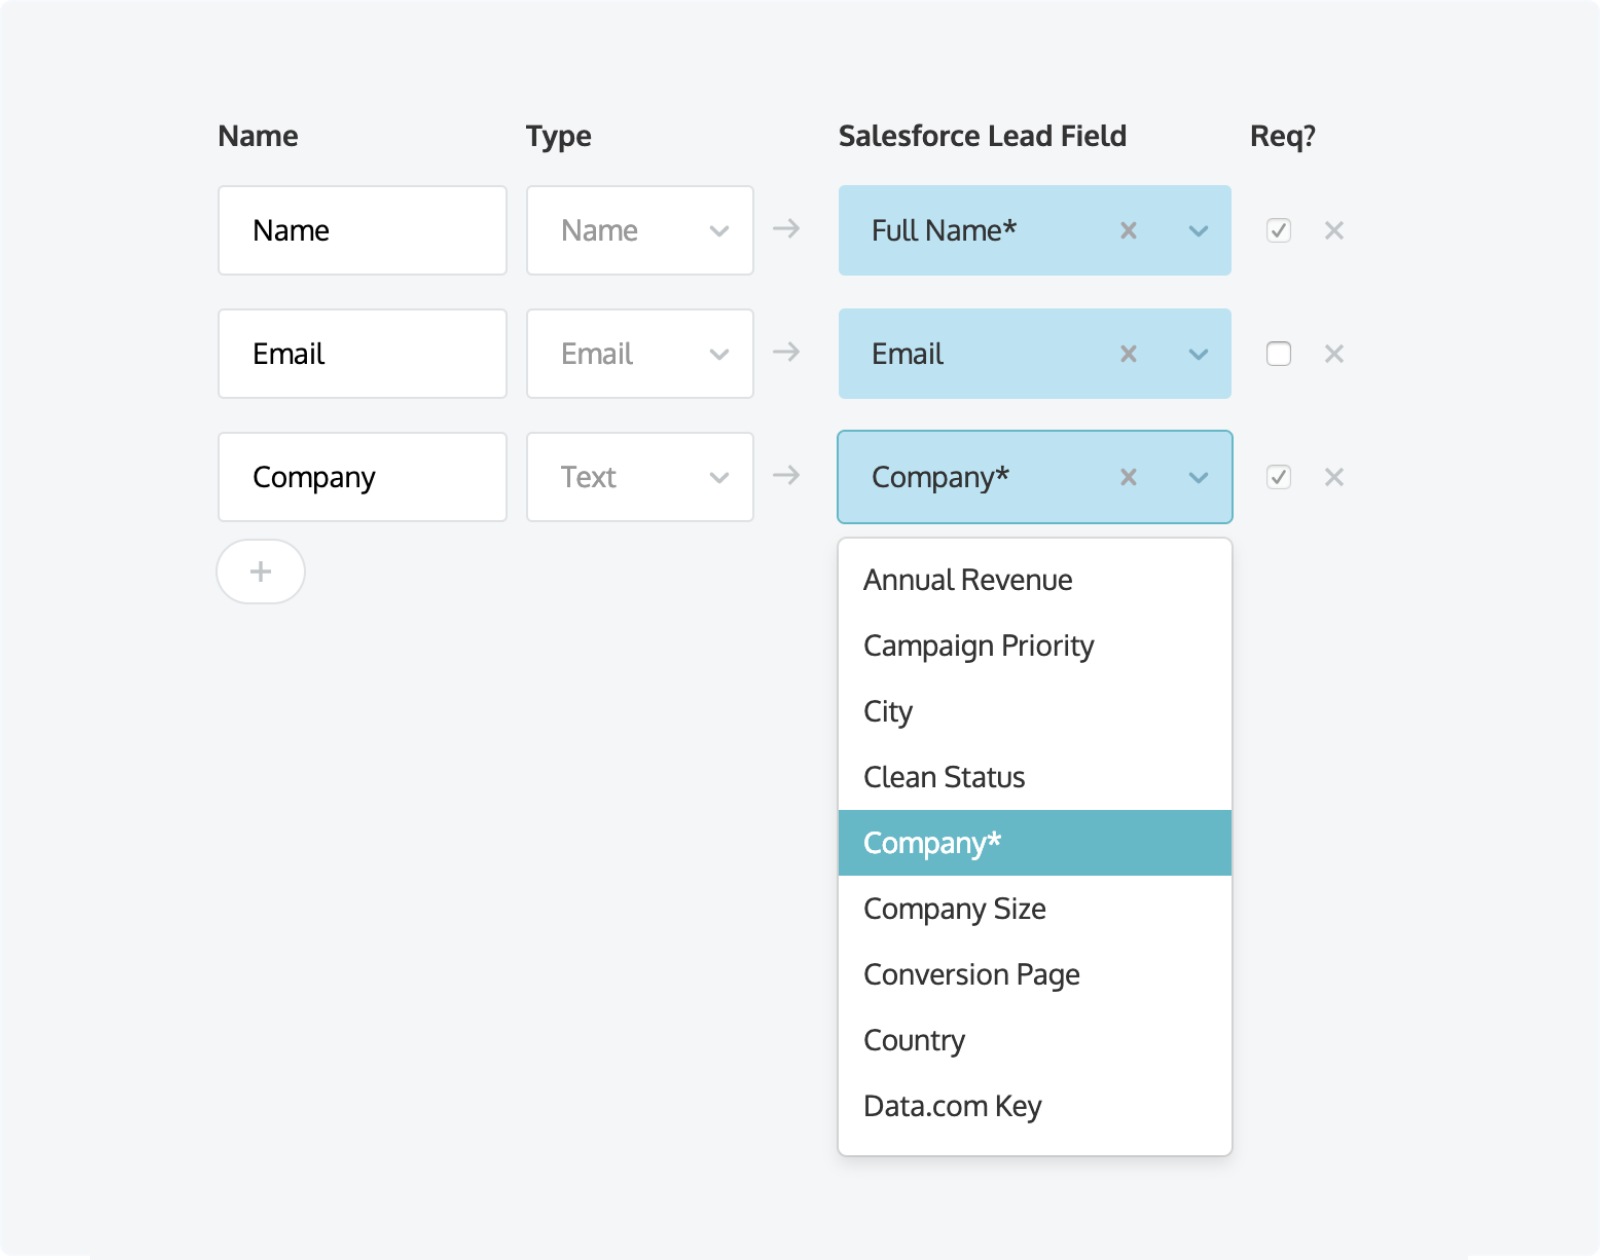 Mapping required fields such as Name, Email, and Company to Salesforce